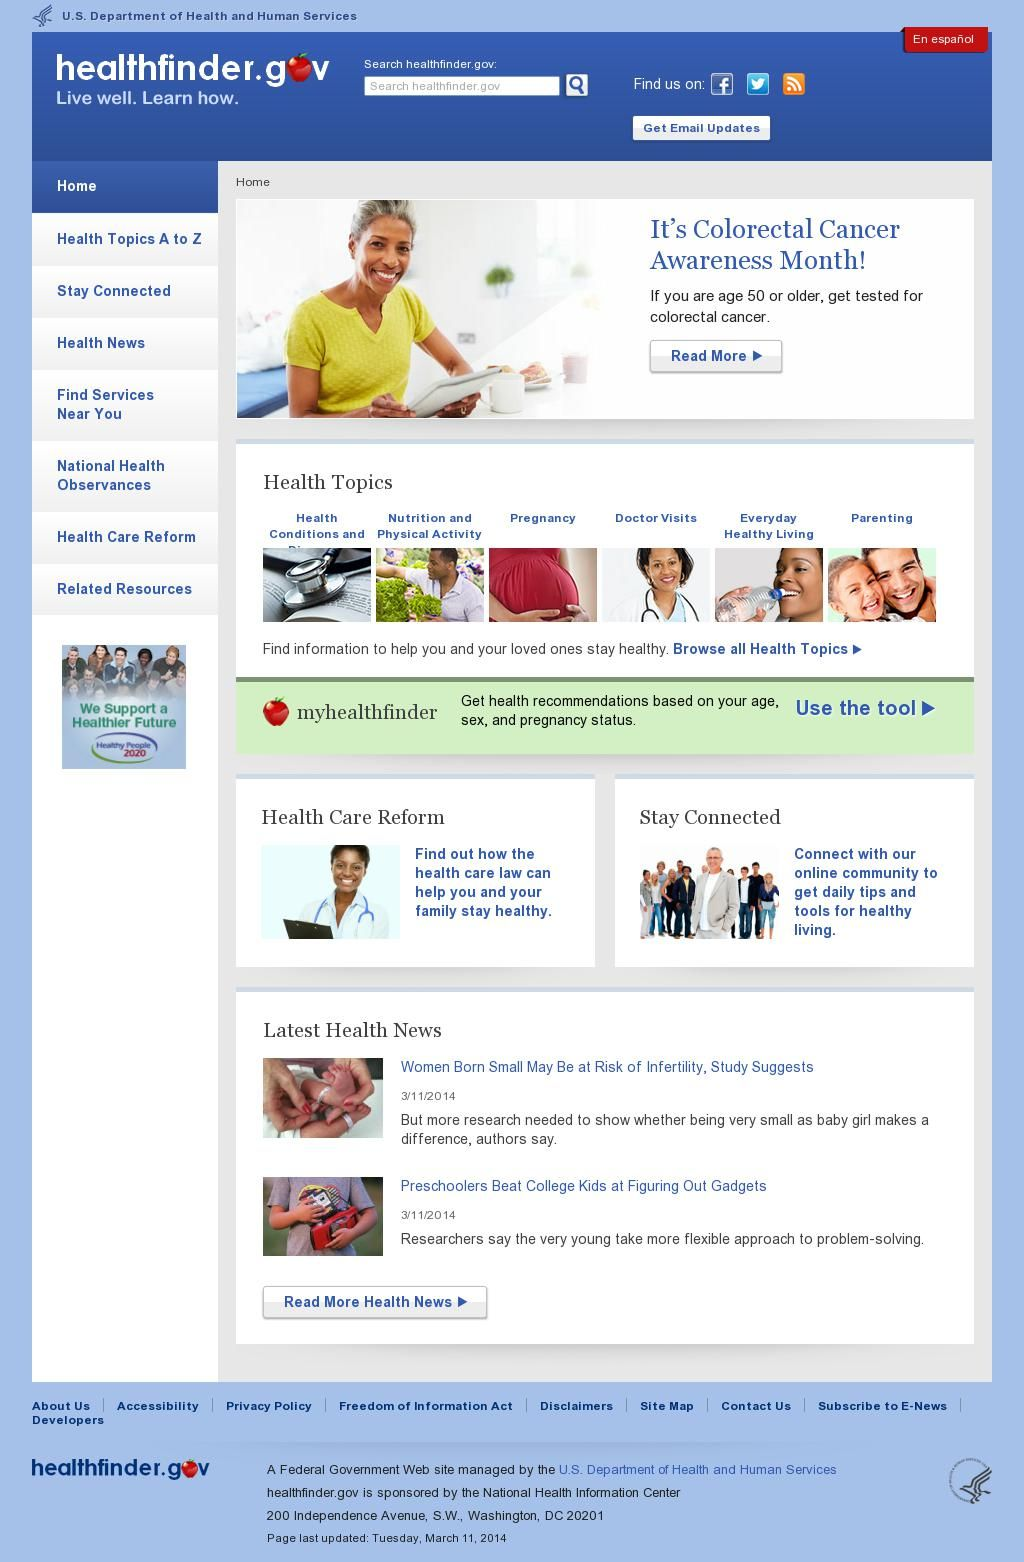 Healthfinder site from the U.S. Department of Health and